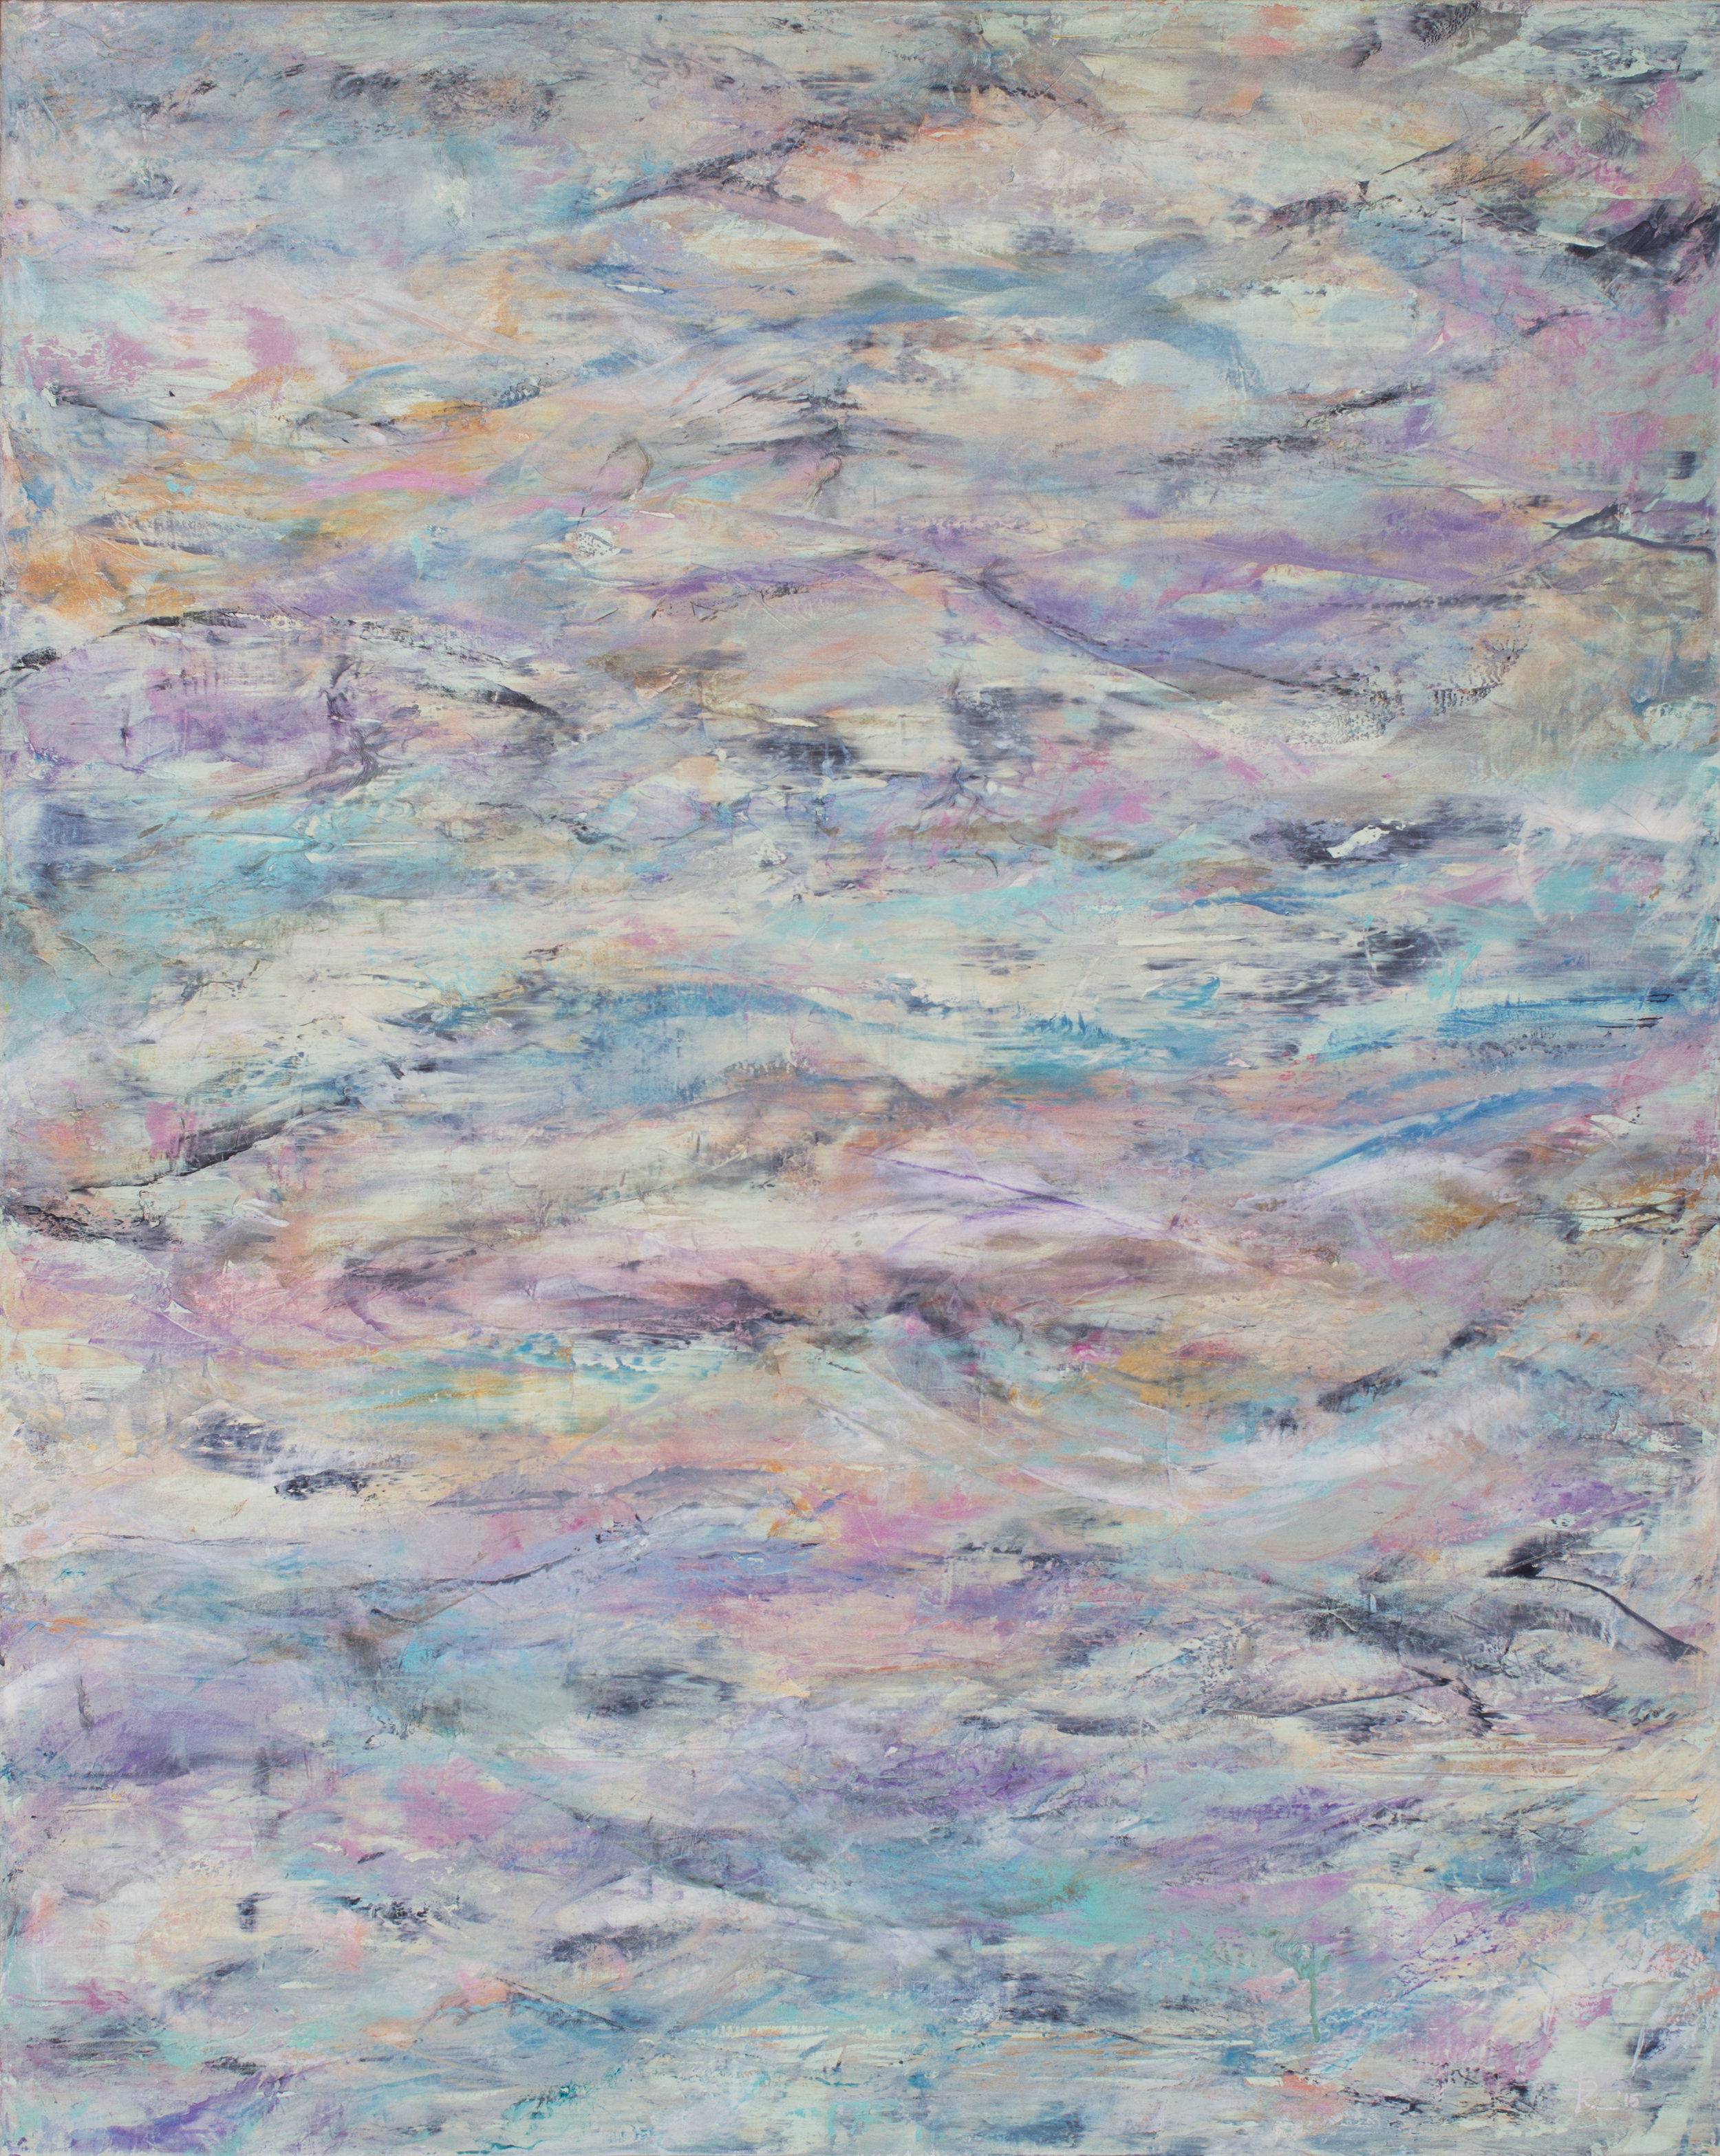 60x48_D_Waves2_2015_Krutick_Oil.jpg